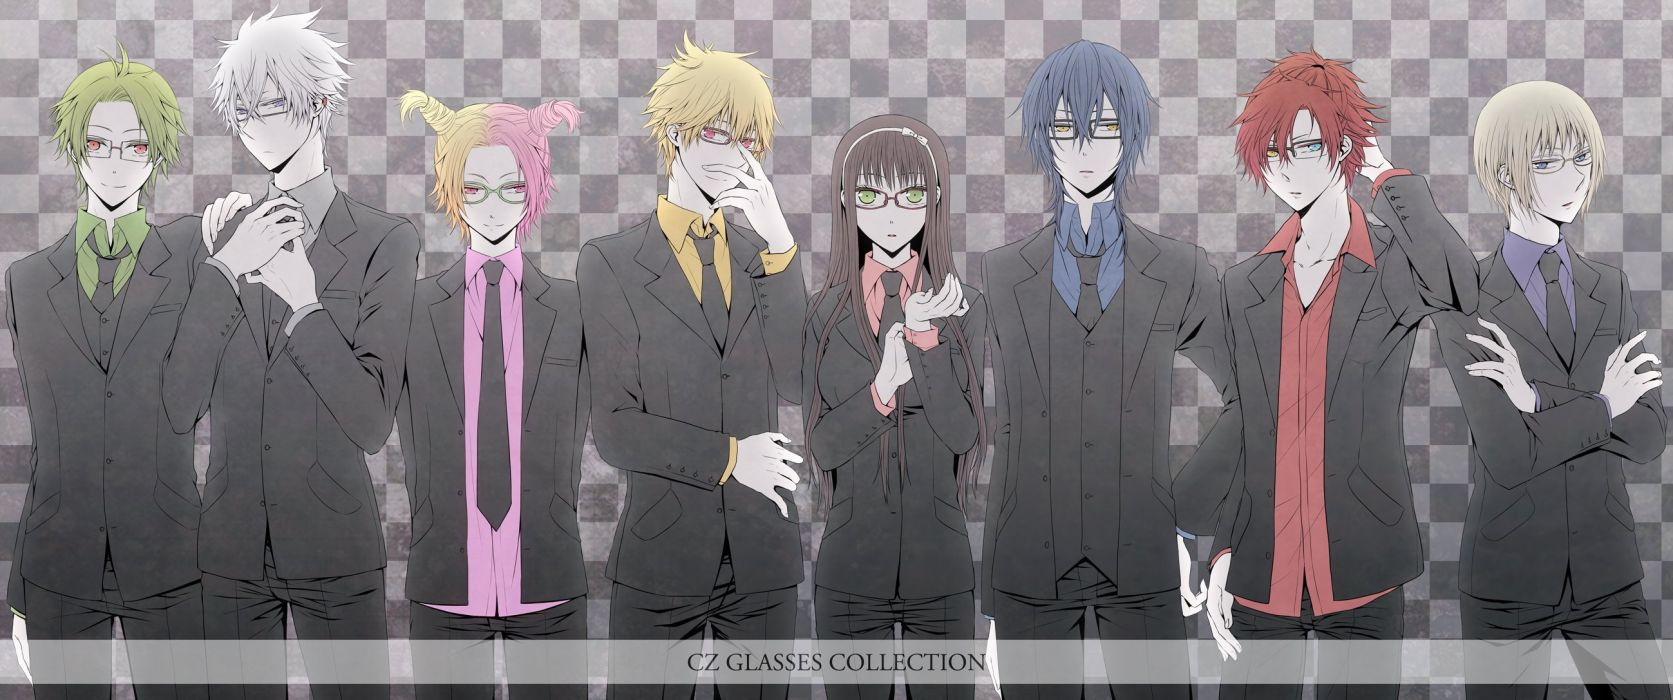 anime game group Clock Zero ~Shuuen no Ichibyou ahoge blonde hair blue eyes blue hair brown hair glasses green eyes green hair grey band heterochromia jewelry long hair pink hair red eyes red hair short hair smile suit twin tails yellow wallpaper